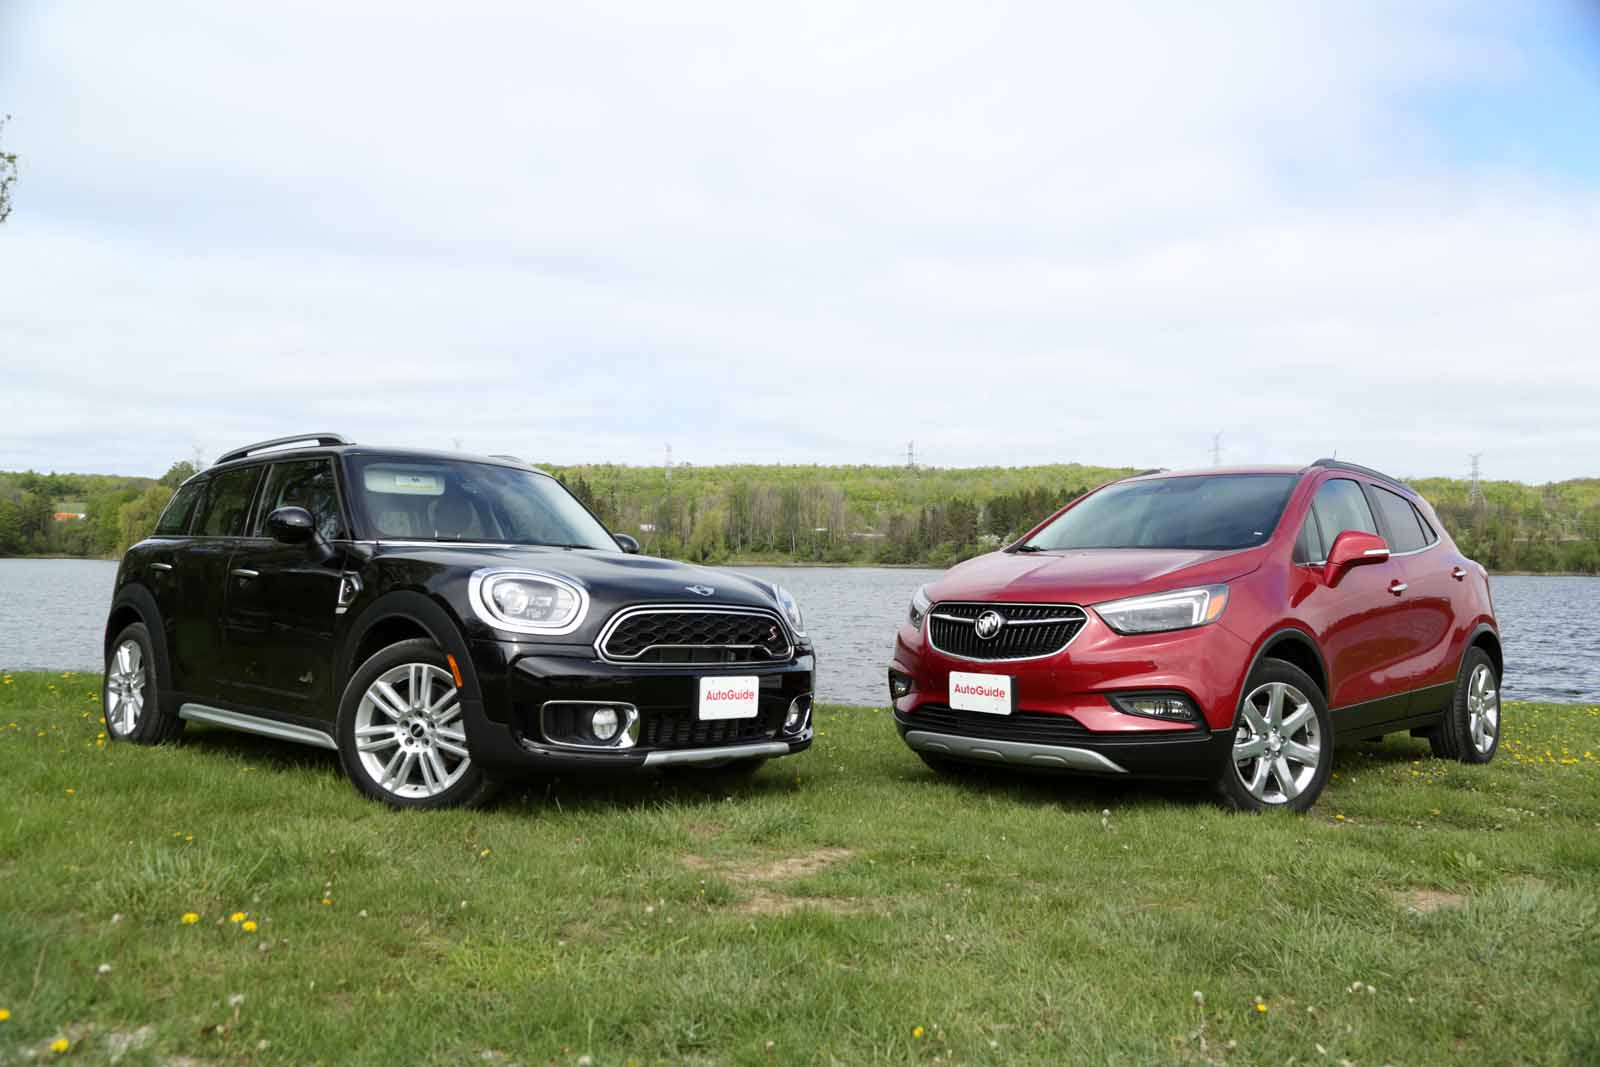 2017 Mini Countryman Vs Buick Encore 002